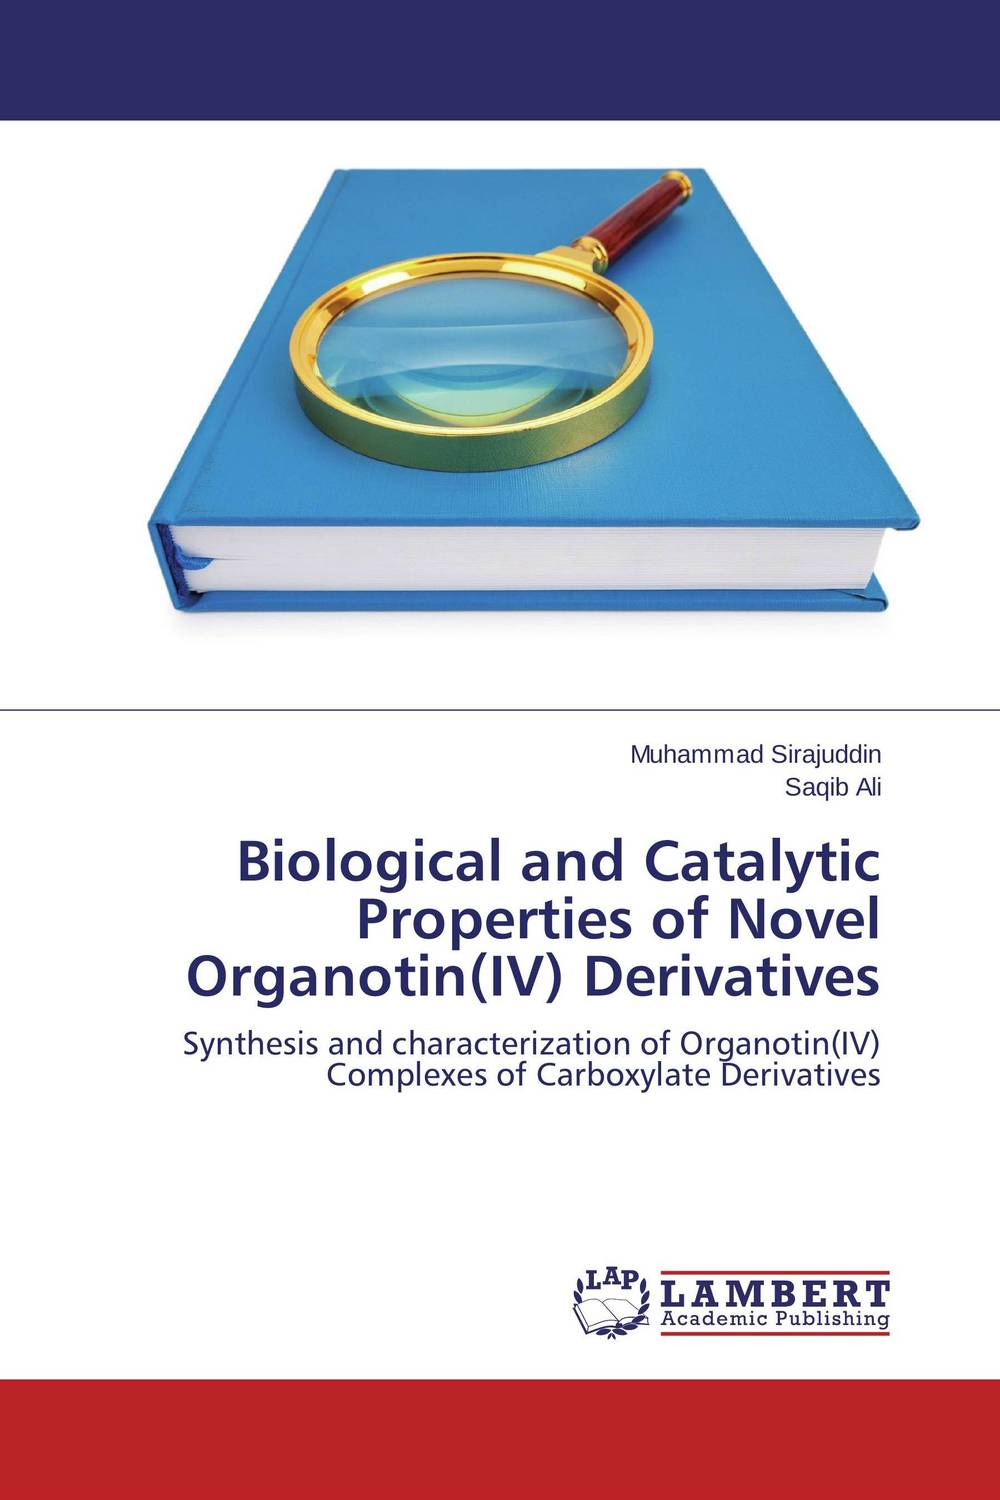 Biological and Catalytic Properties of Novel Organotin(IV) Derivatives modified pnas synthesis and interaction studies with dna